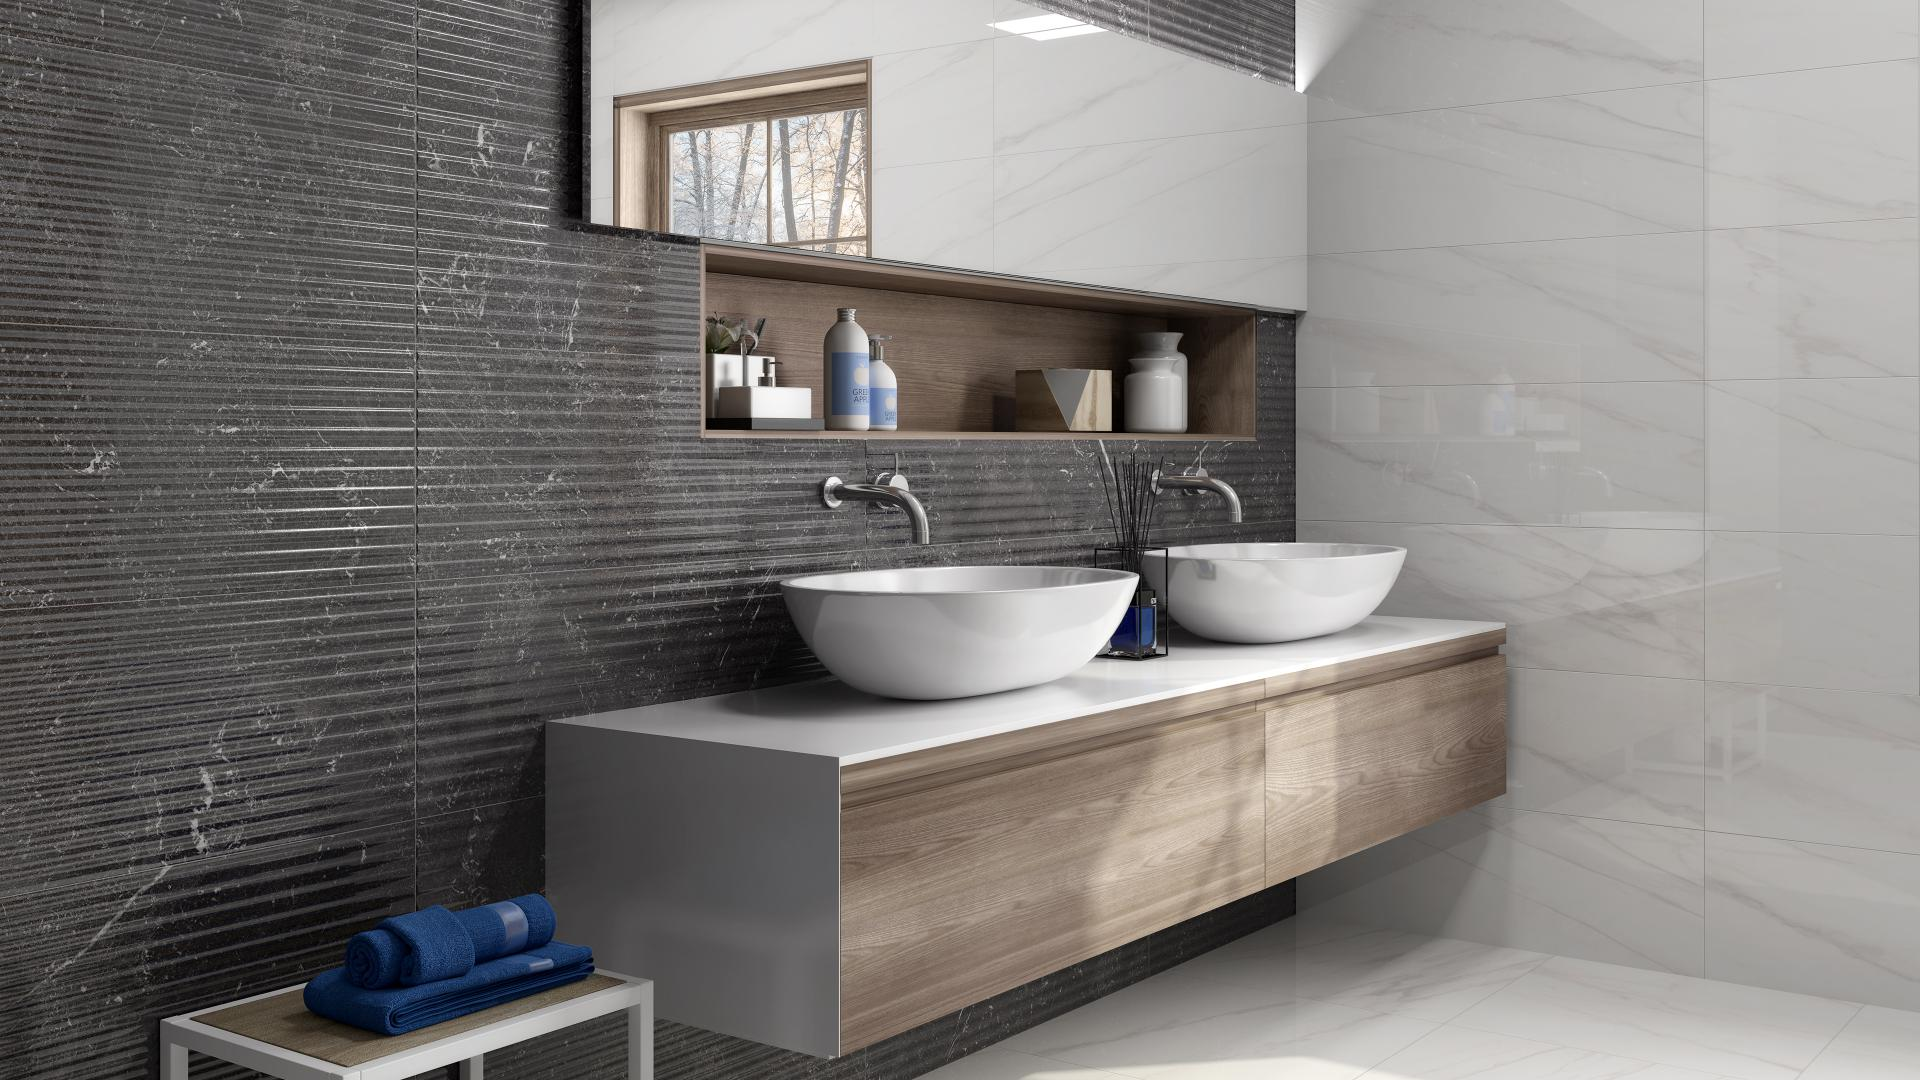 571 Tiles dublin waterloo bathrooms commercial contracts ireland supply and fit luxury.jpg